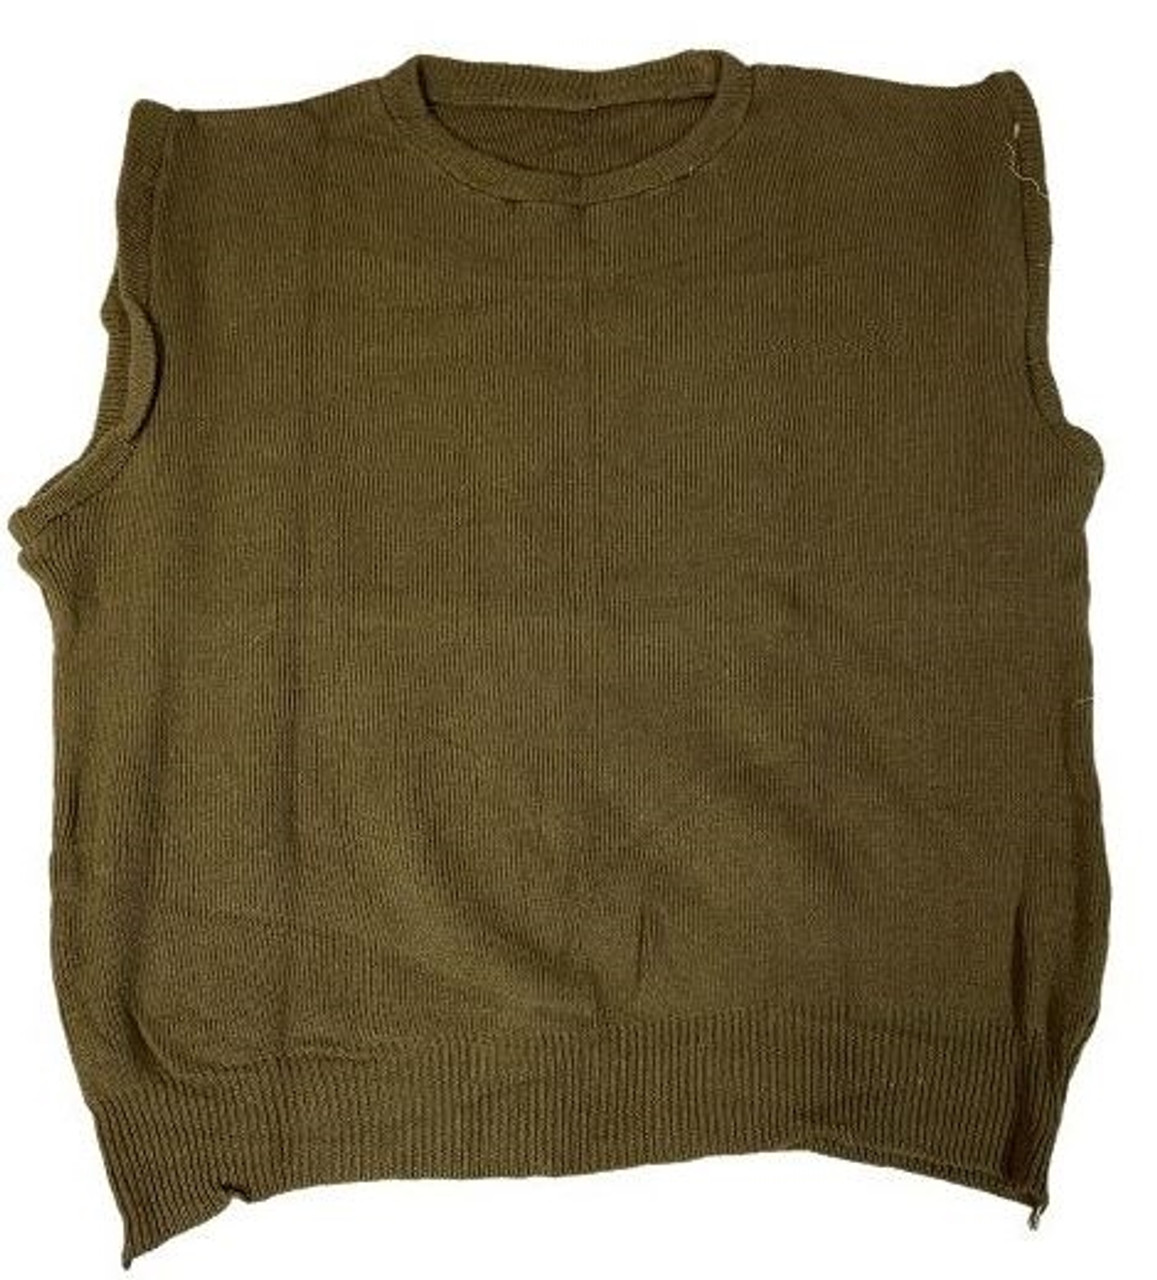 Romanian M85 OD Sweater Vest - Used